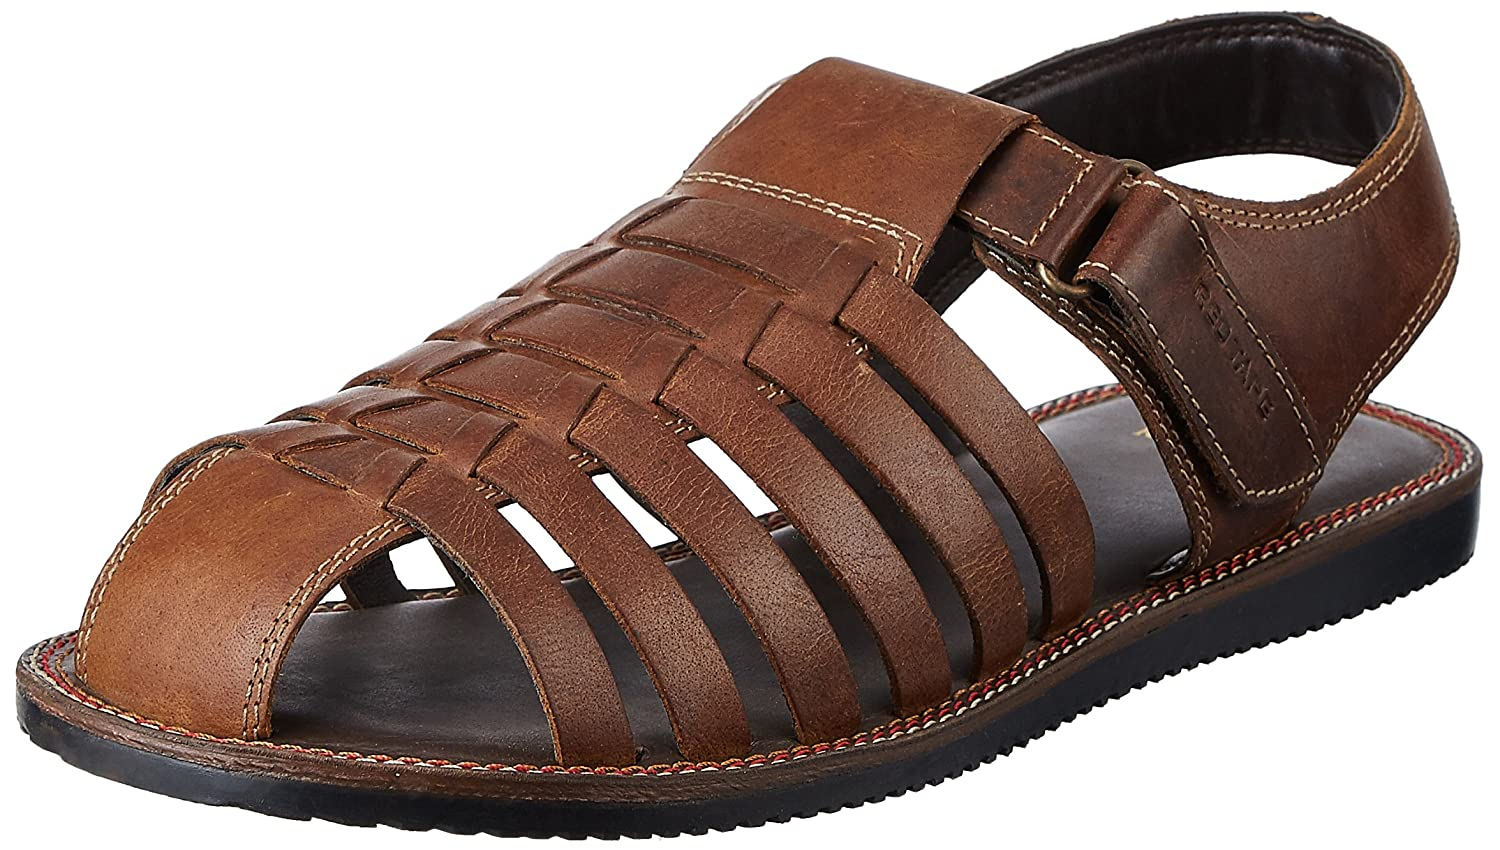 87f18539bab7d Red Tape Men s Brown Leather Sandals - 7 UK India (41 EU)  Buy Online at  Low Prices in India - Amazon.in